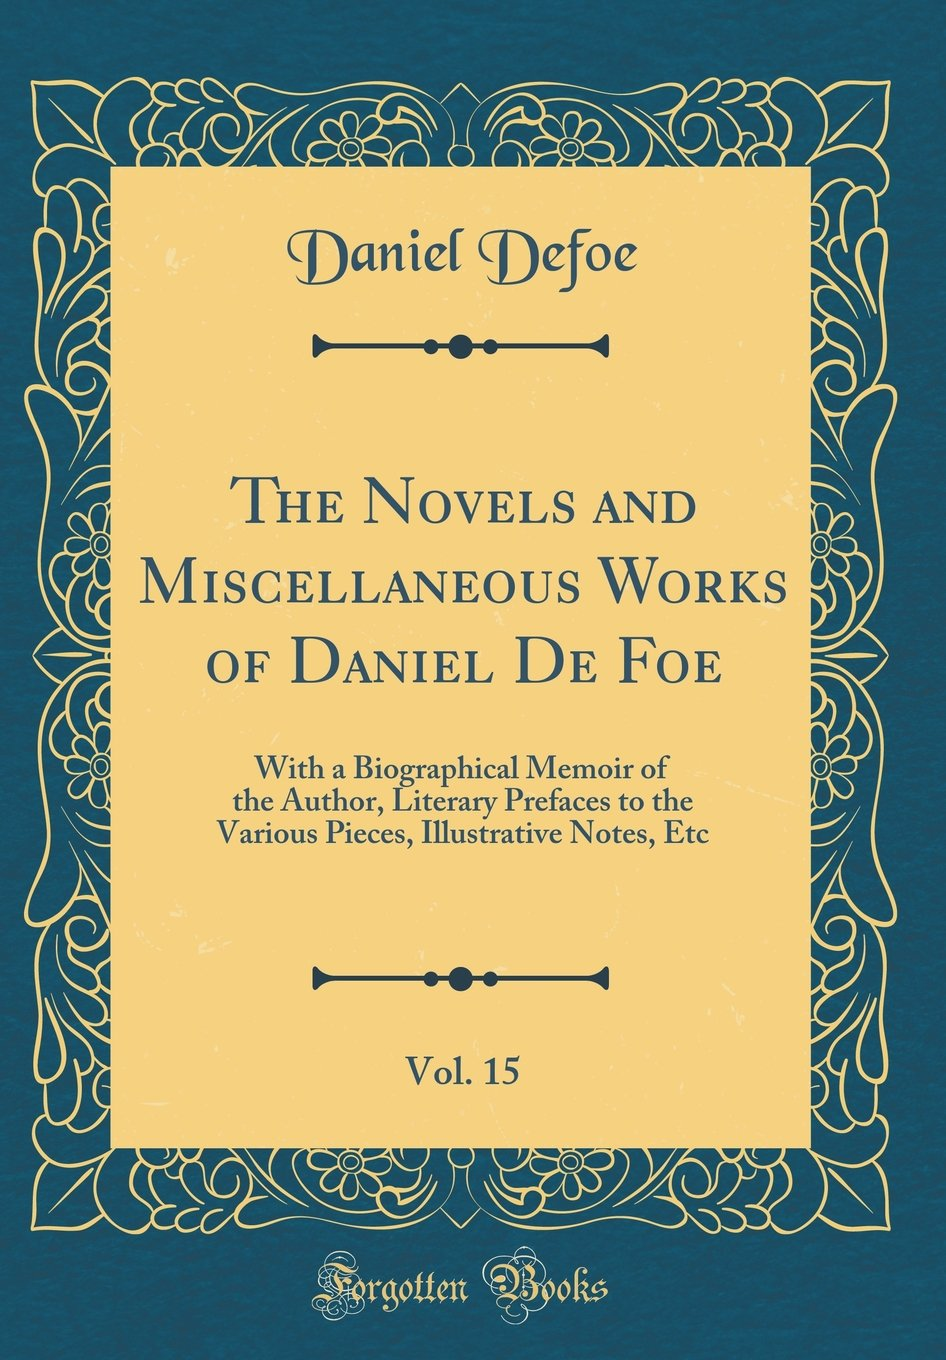 Read Online The Novels and Miscellaneous Works of Daniel De Foe, Vol. 15: With a Biographical Memoir of the Author, Literary Prefaces to the Various Pieces, Illustrative Notes, Etc (Classic Reprint) PDF